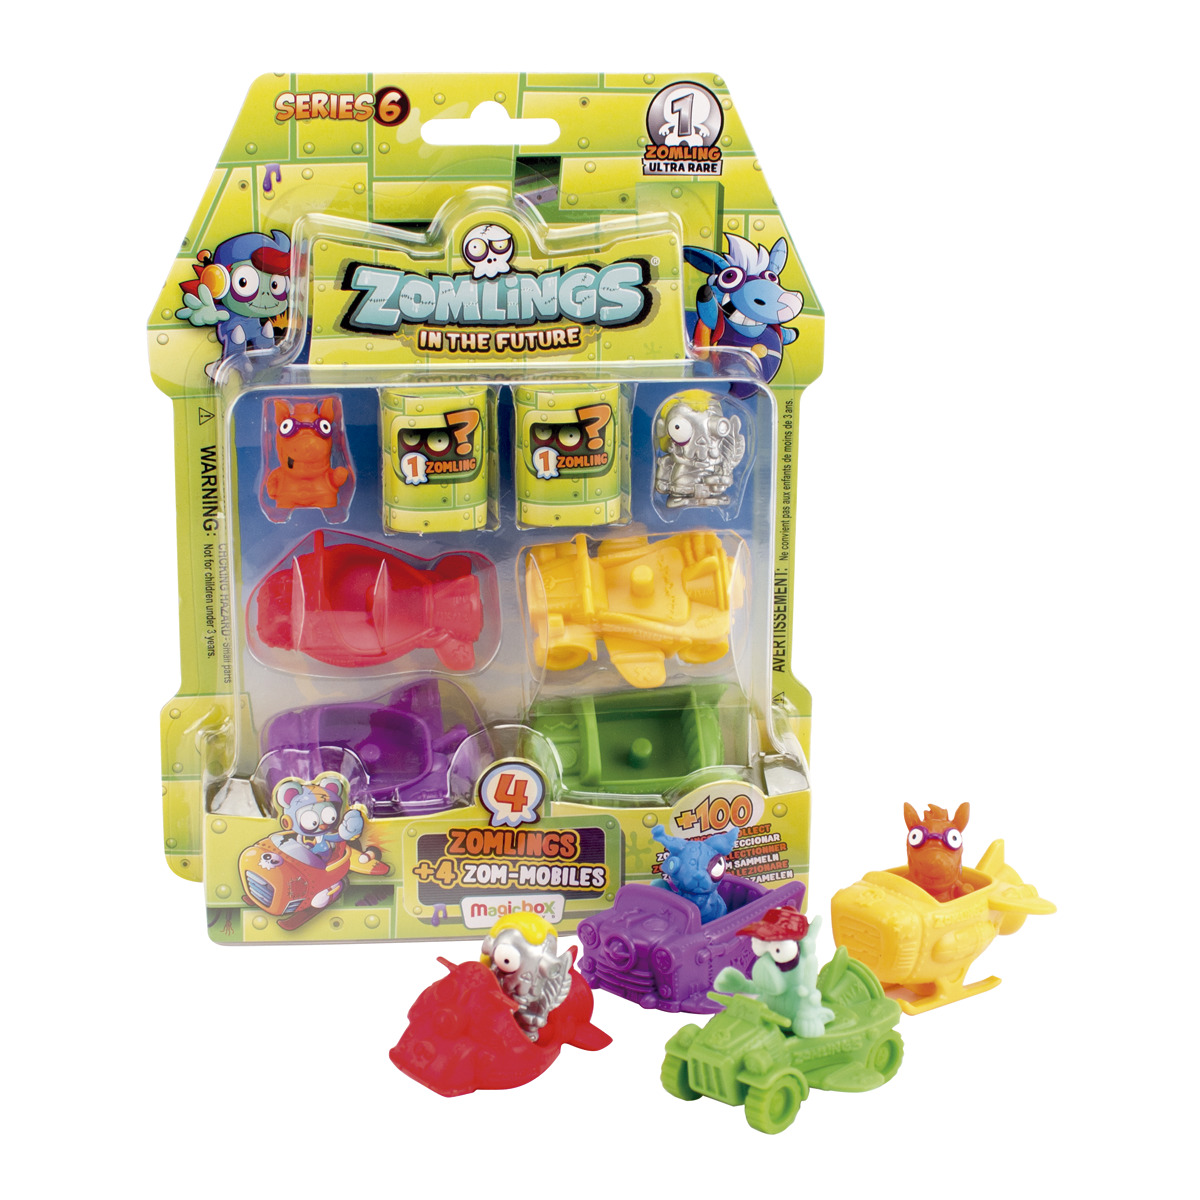 Pack 4 Zomlings + 4 Zom-mobile, serie 6